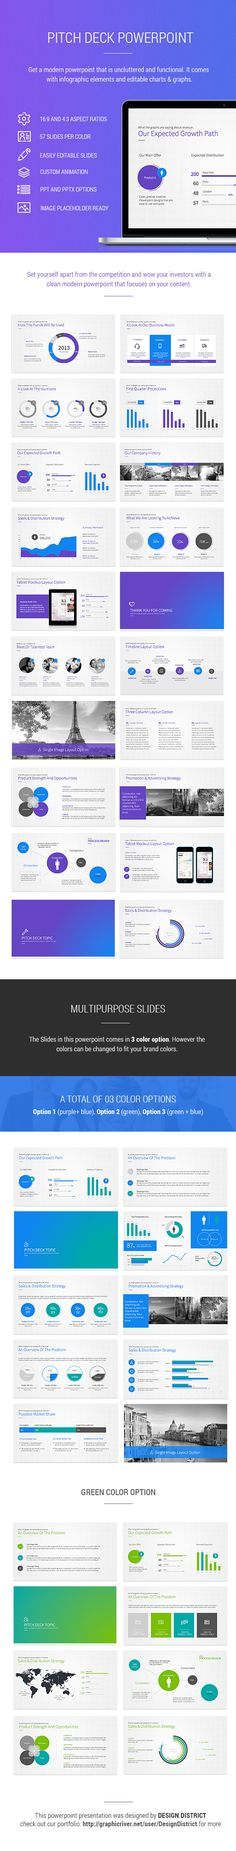 Pitch Deck Powerpoint on Behance